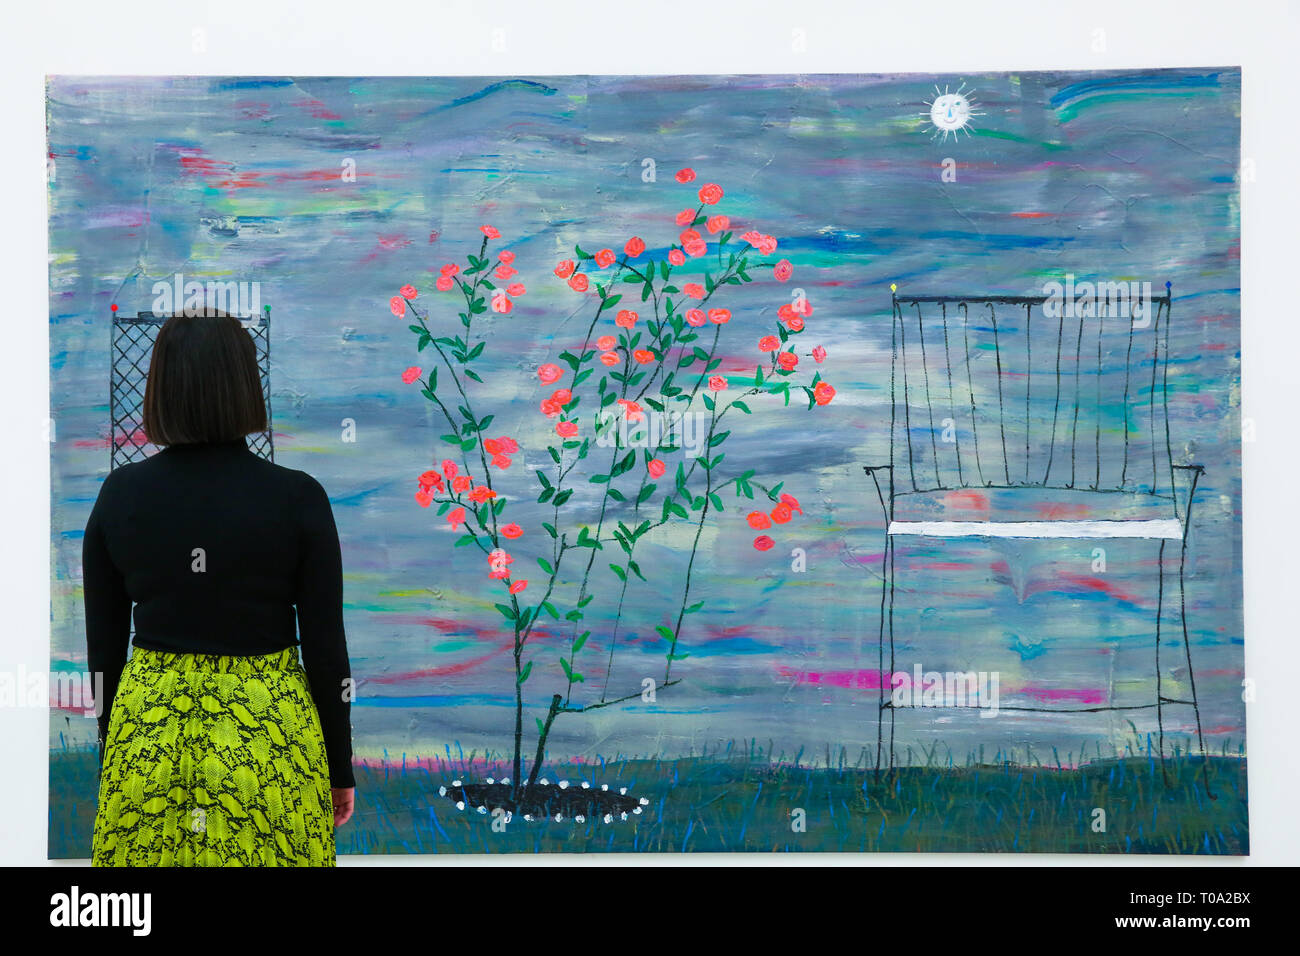 March 14, 2019 - London, UK, United Kingdom - A woman is seen viewing Tom Howse's ''Rosebush'' at Saatchi Gallery during the exhibition. .Kaleidoscope at the Saatchi Gallery presents is an exhibition featuring the work of 9 international contemporary artists working across a variety of mediums which aims to be a timely exploration of our relationship with our surroundings, asking everyone to reconsider the way we engage with our environment. Kaleidoscope runs until 5 May 2019. (Credit Image: © Dinendra Haria/SOPA Images via ZUMA Wire) Stock Photo